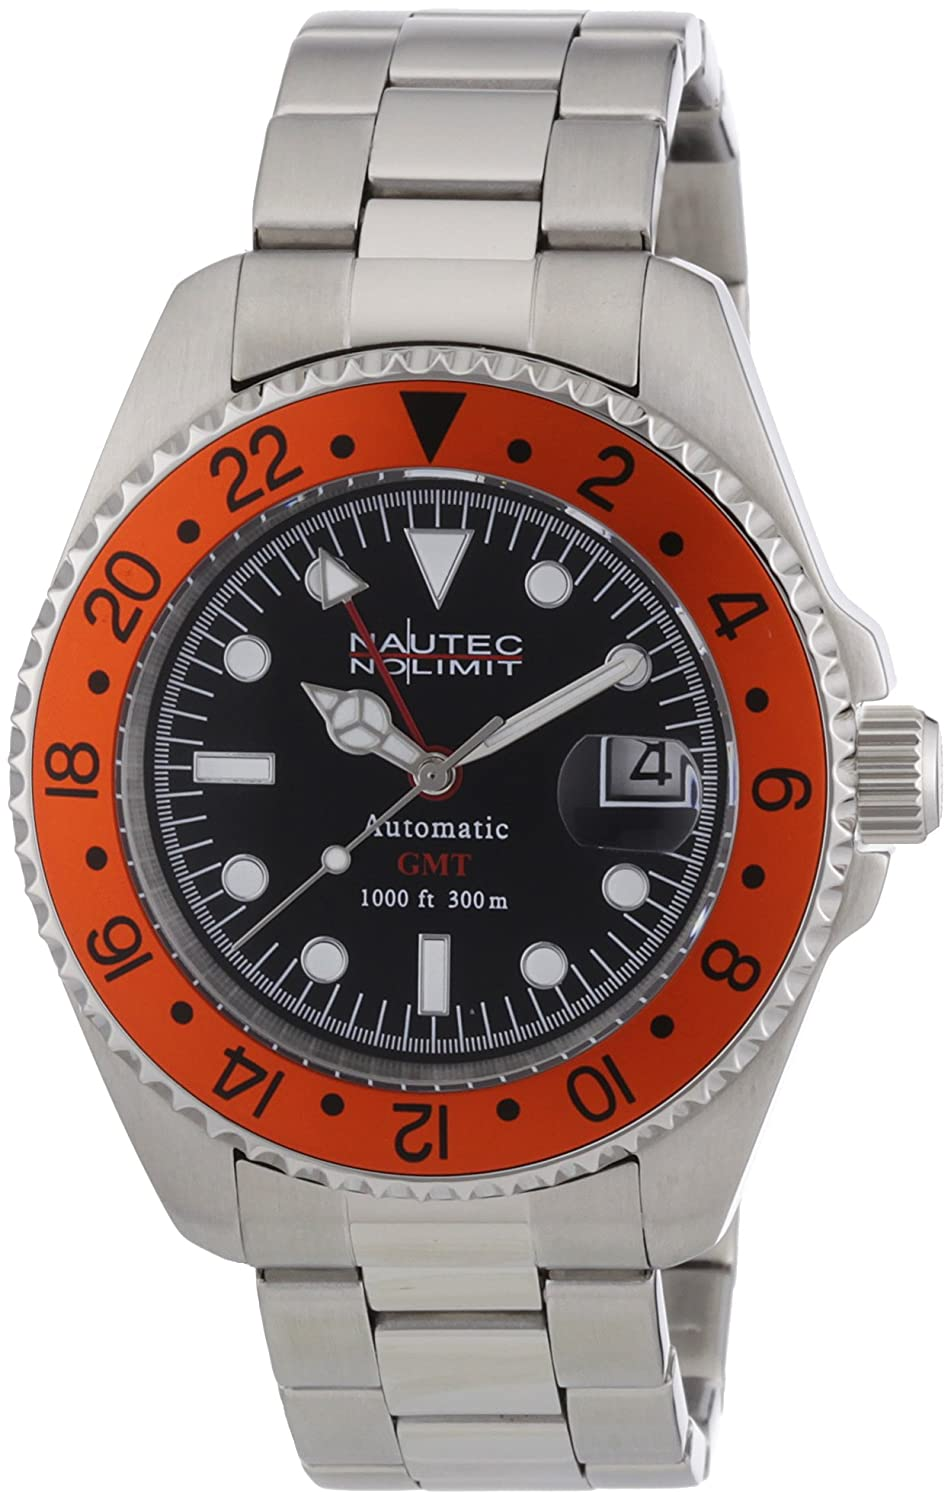 Nautec No Limit Herren-Armbanduhr Deep Sea DS AT-GMT-STSTORBK